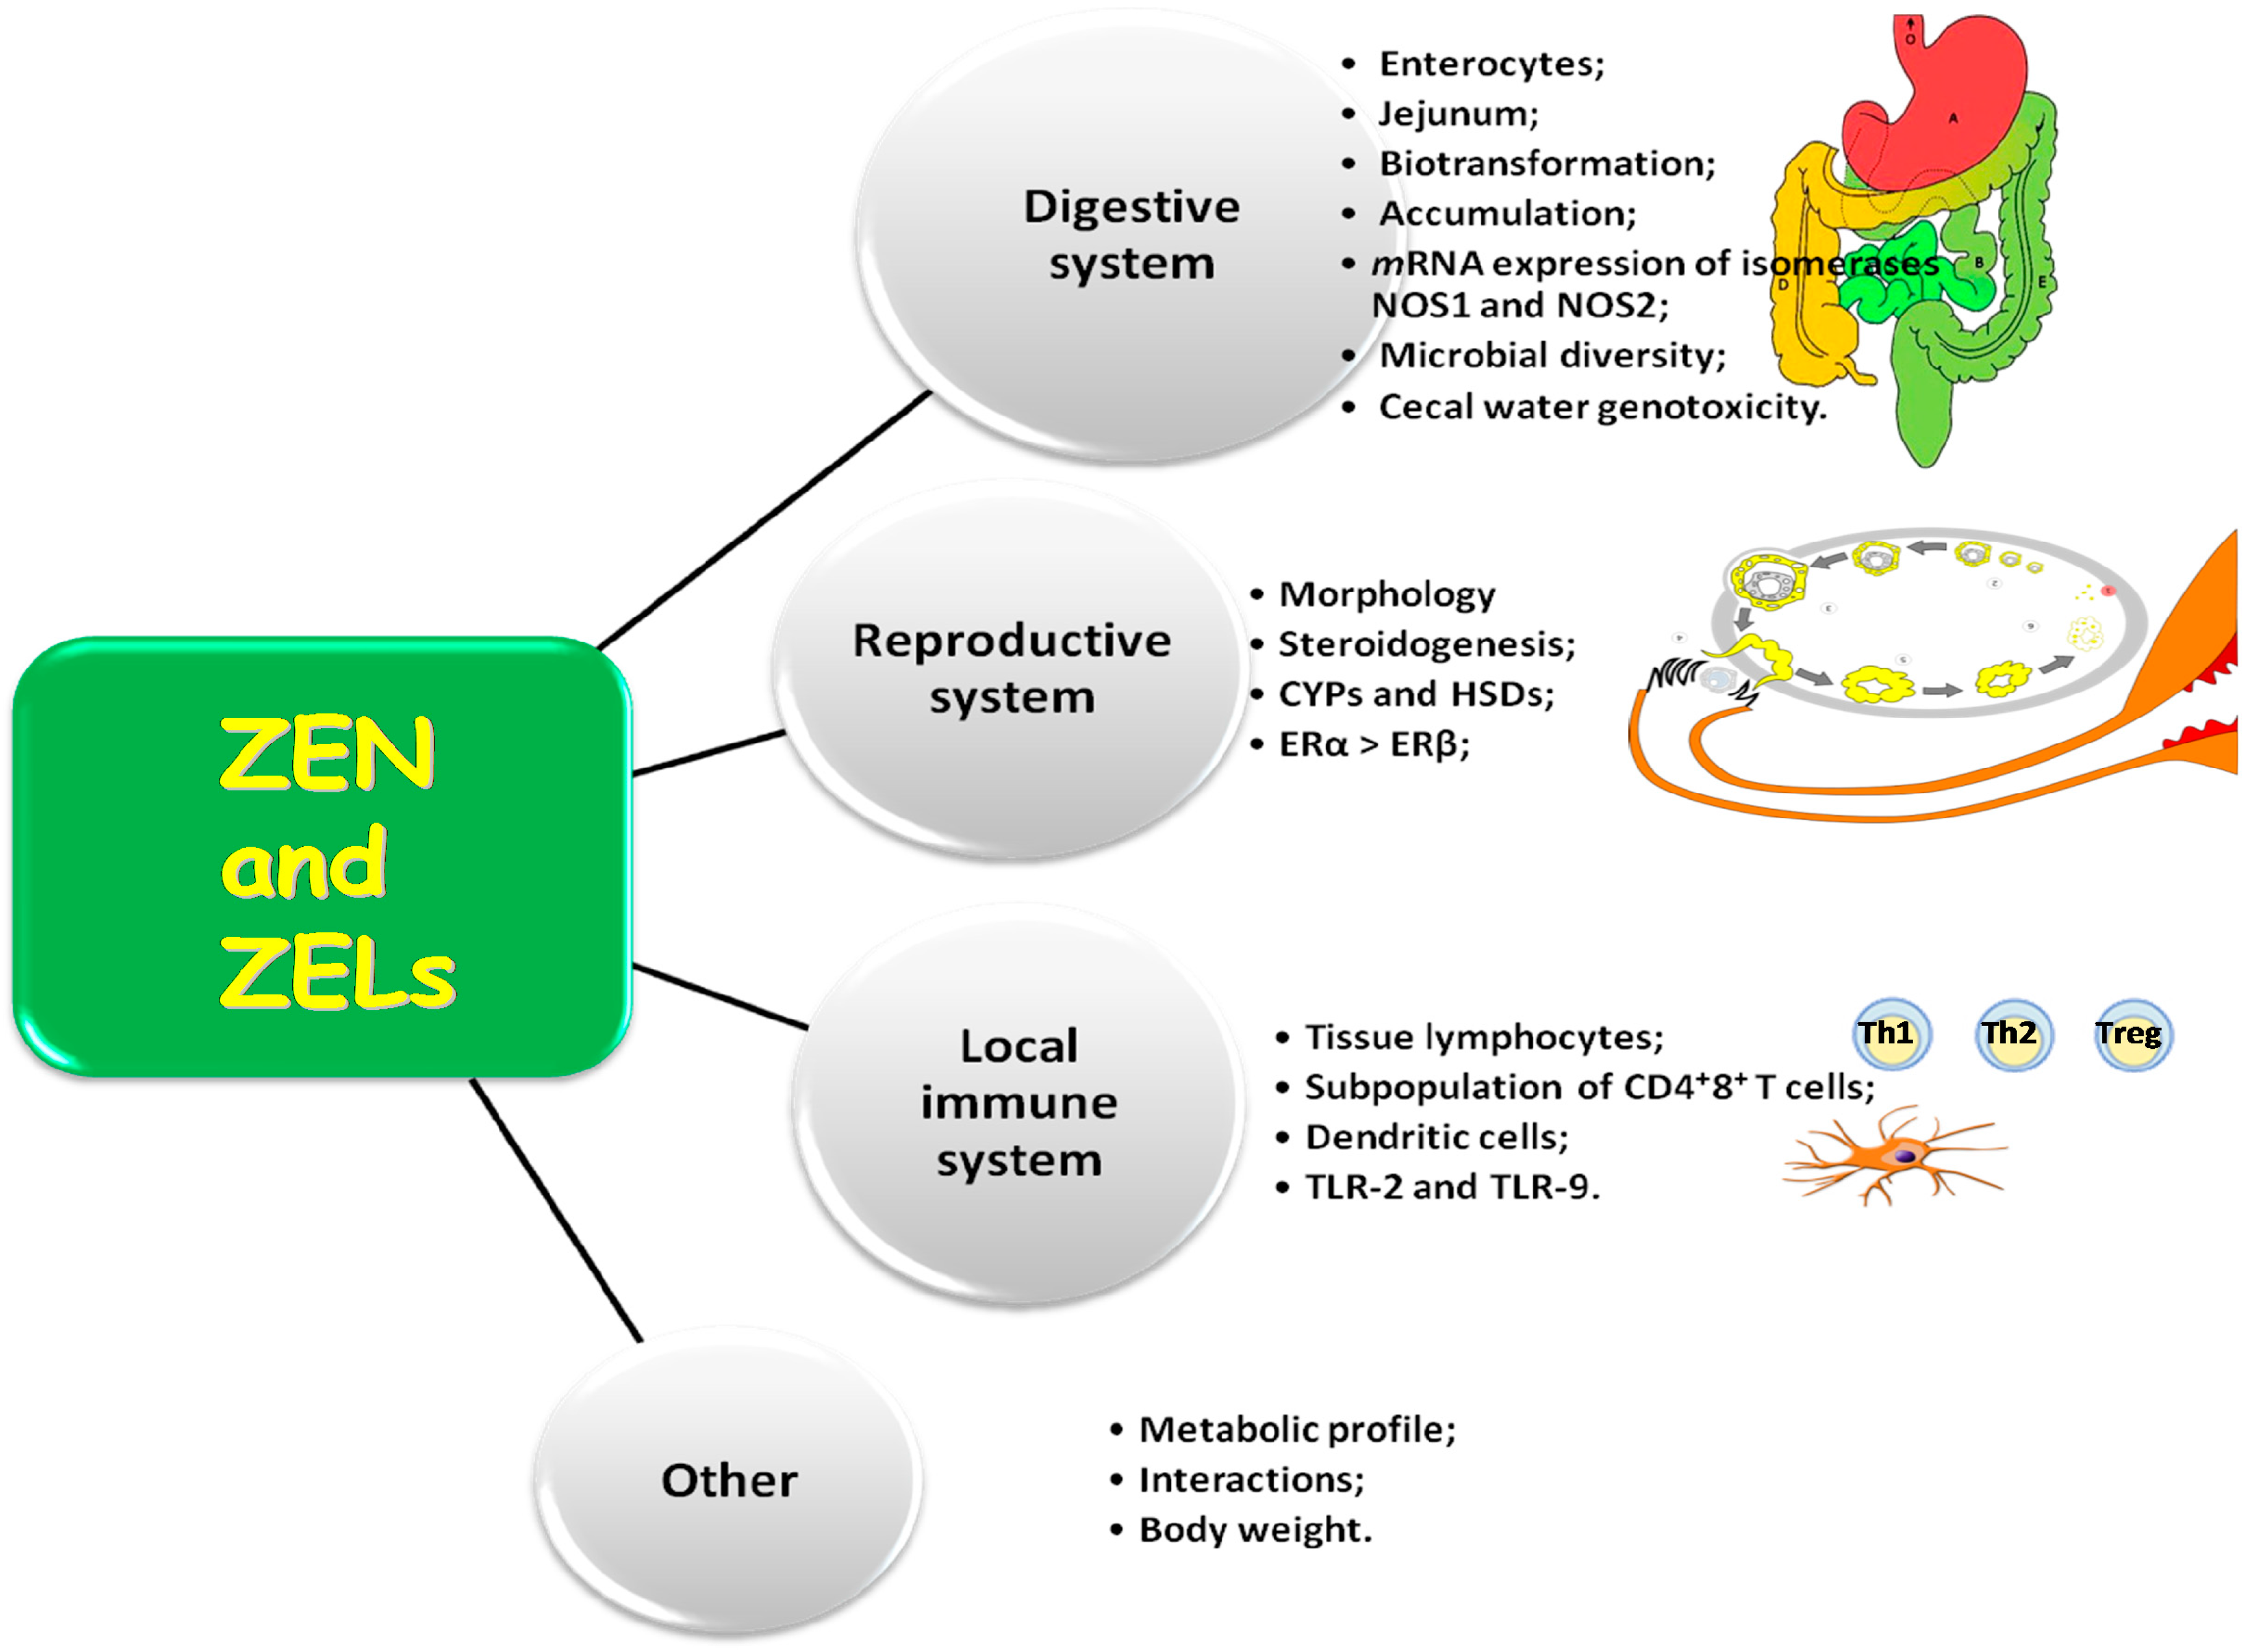 steroid hormones are produced by what metabolic precursor